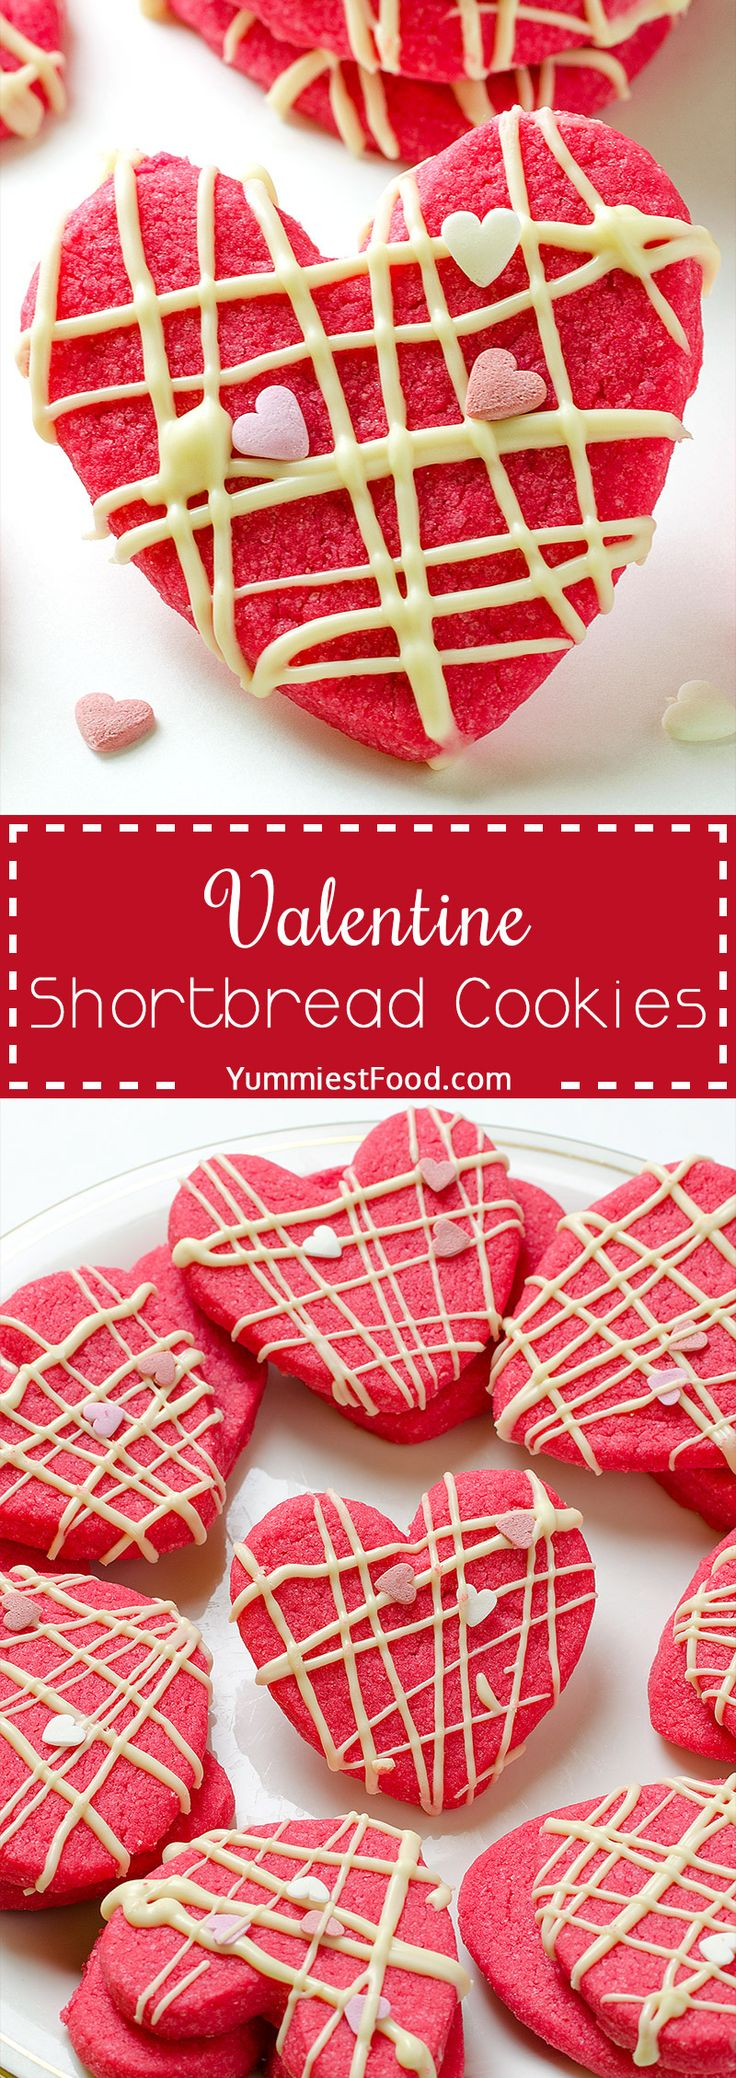 Valentine Shortbread Cookies – It is Valentine's day, so let it be magical and romantic! Make these delicious Valentine Shortbread Cookies and spend perfect moments with your partner!